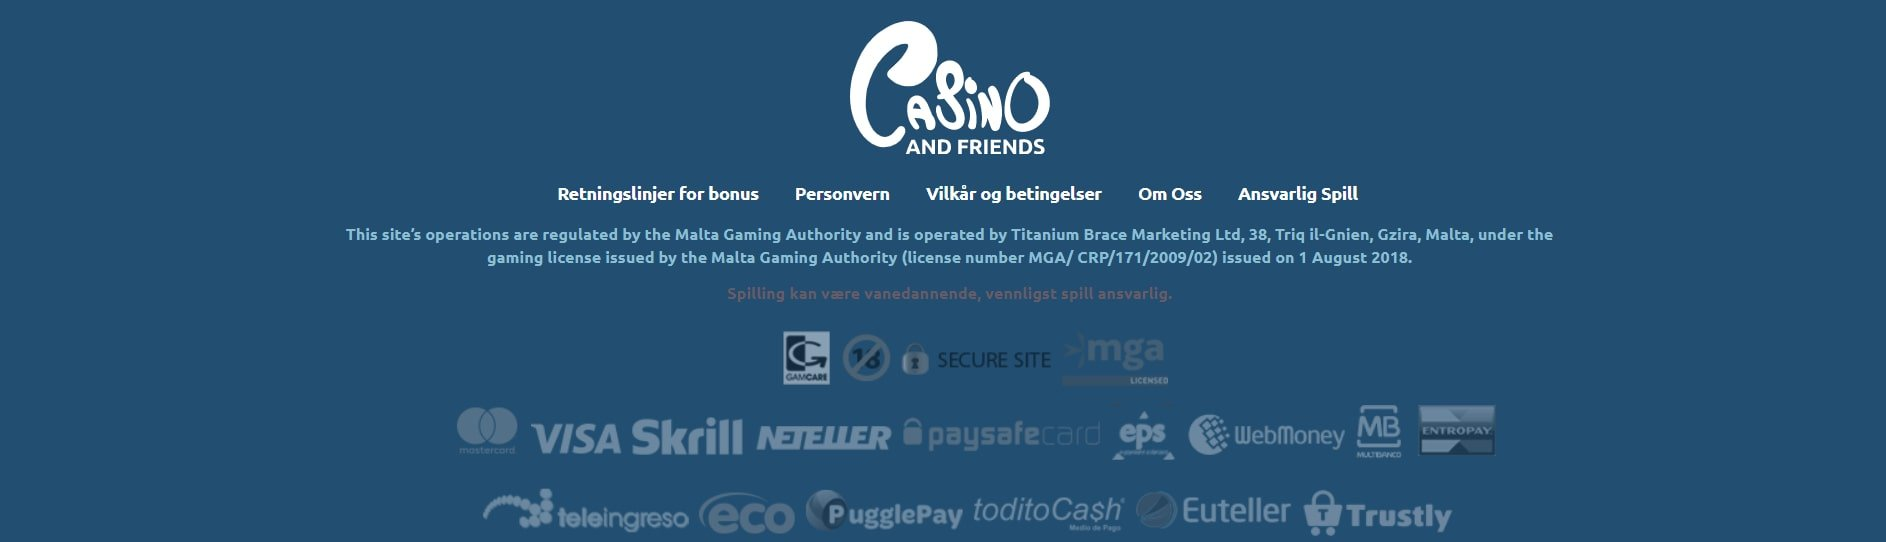 Casino and friends betalingsmetoder